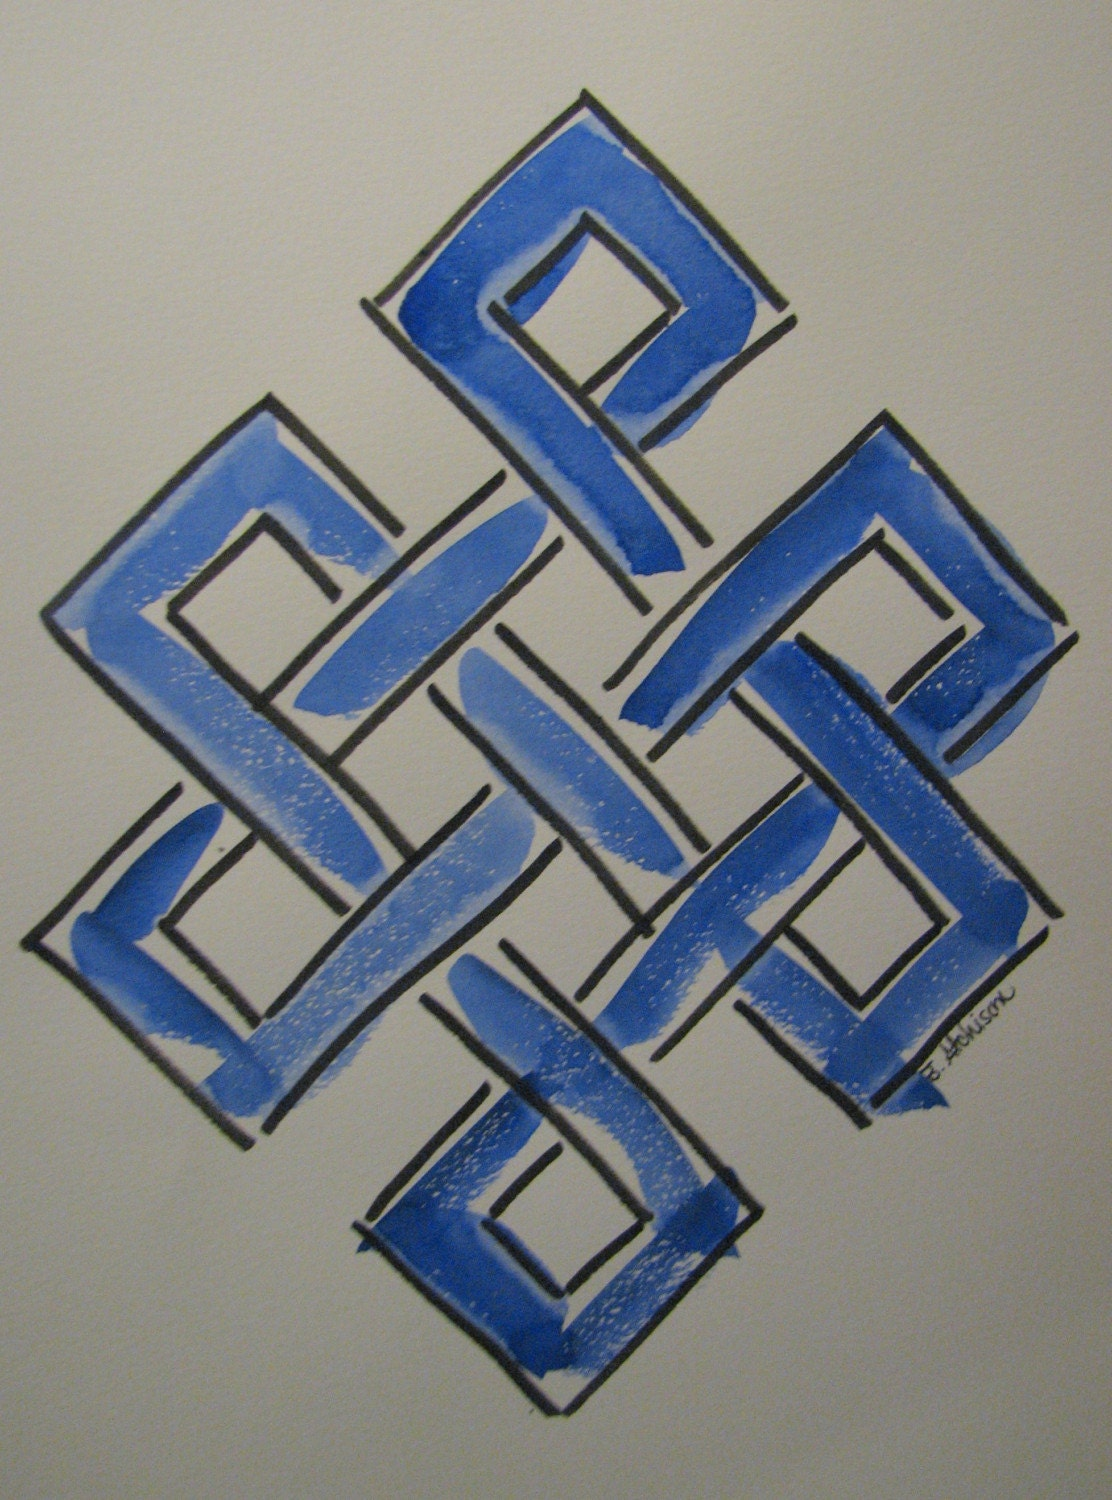 buddhist endless knot symbol